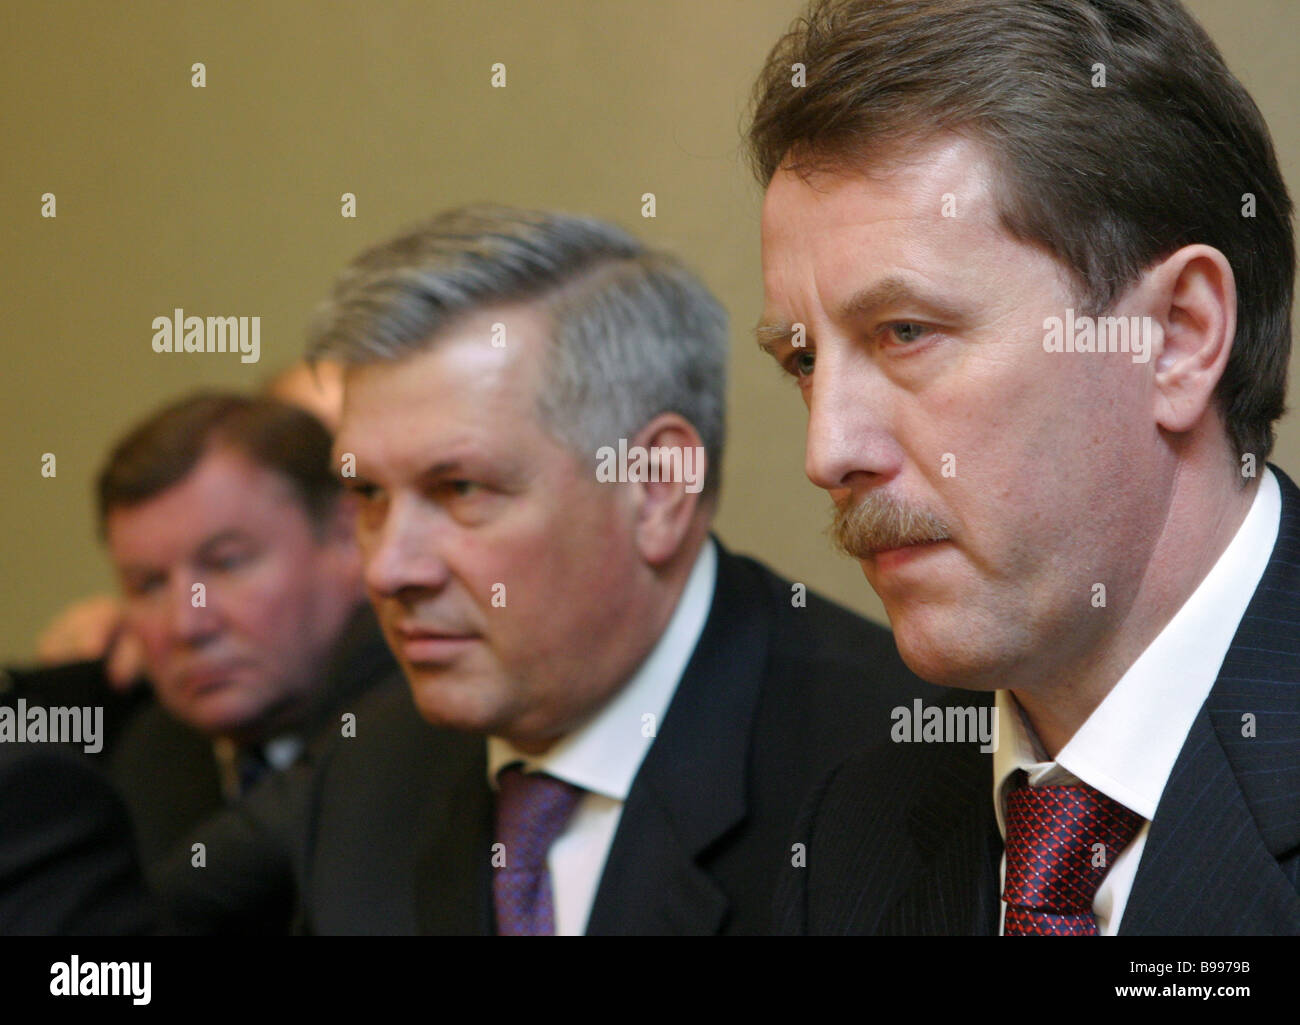 Alexander Tkachev, Minister of Agriculture: biography, family, political career 97